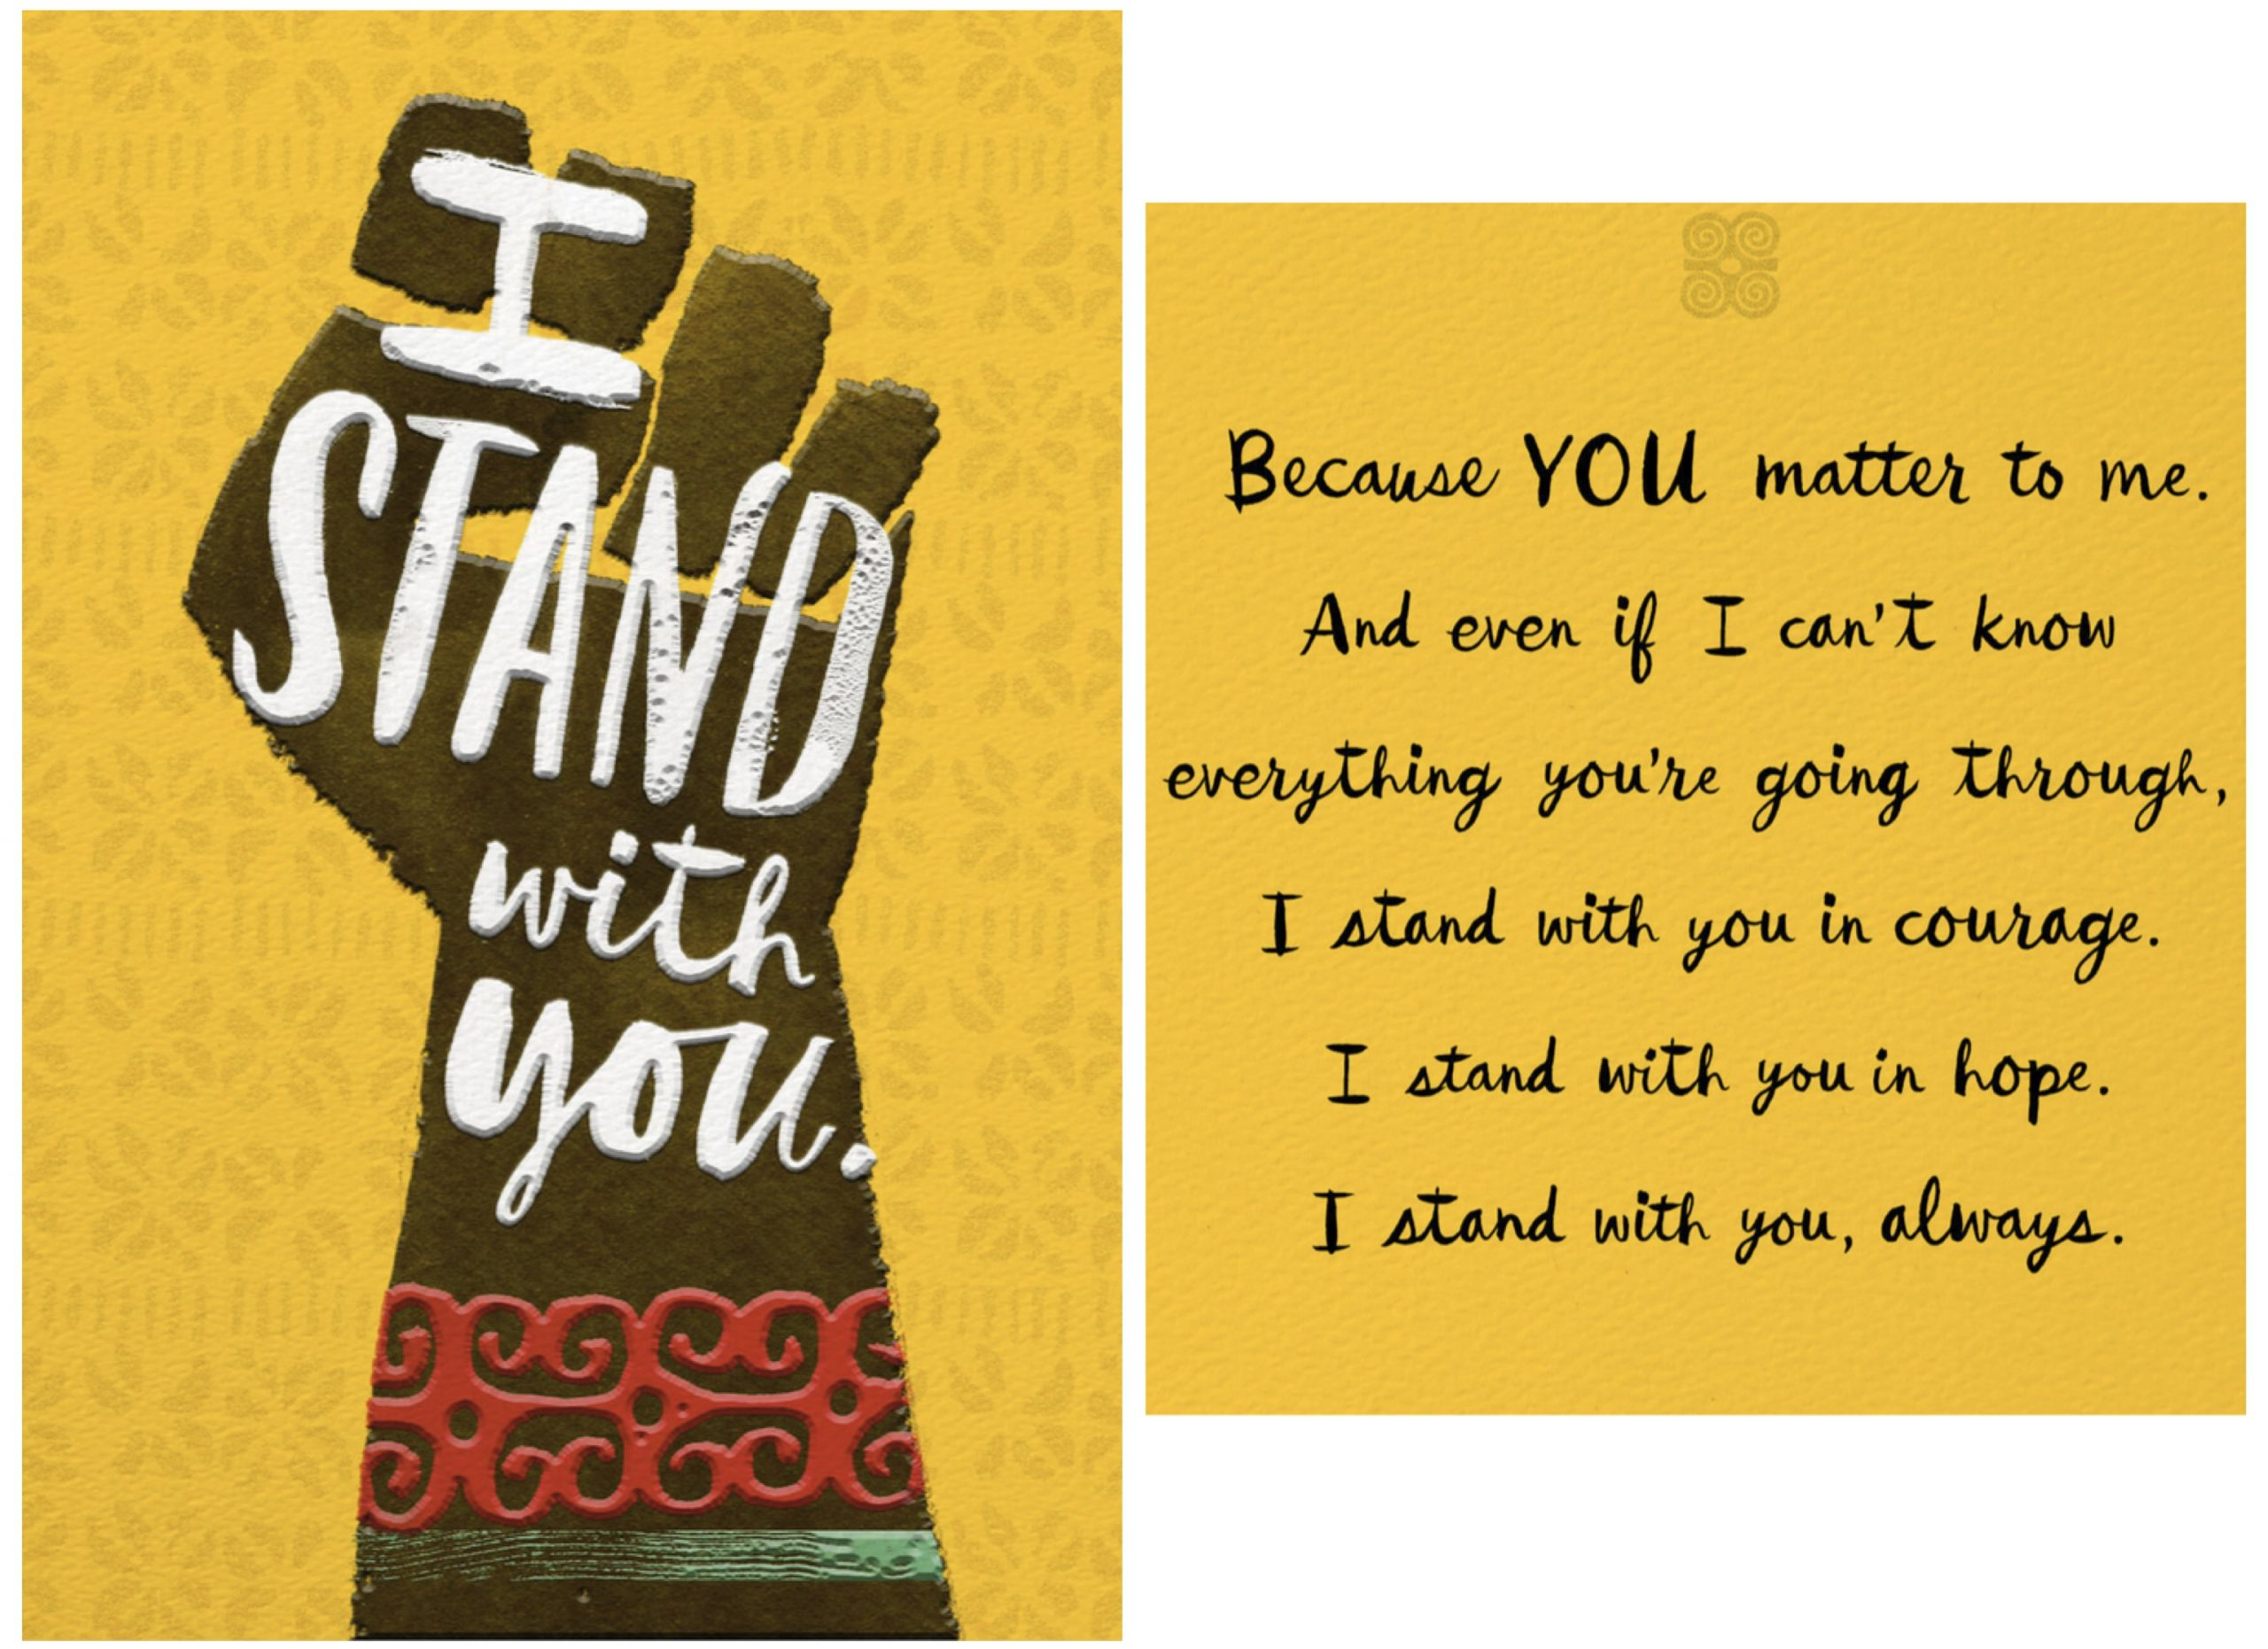 """Greeting Card: Outer text, """"I stand with you."""" Inner text, """"Because YOU matter to me. And even if I can't know everything you're going through, I stand with you in courage. I stand with you in hope. I stand with you, always."""""""